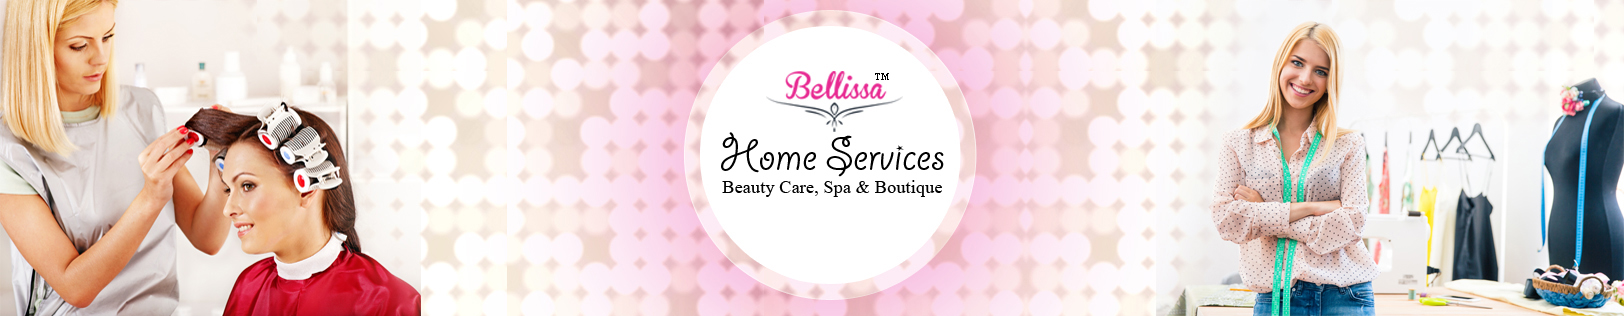 Bellissa Home Services